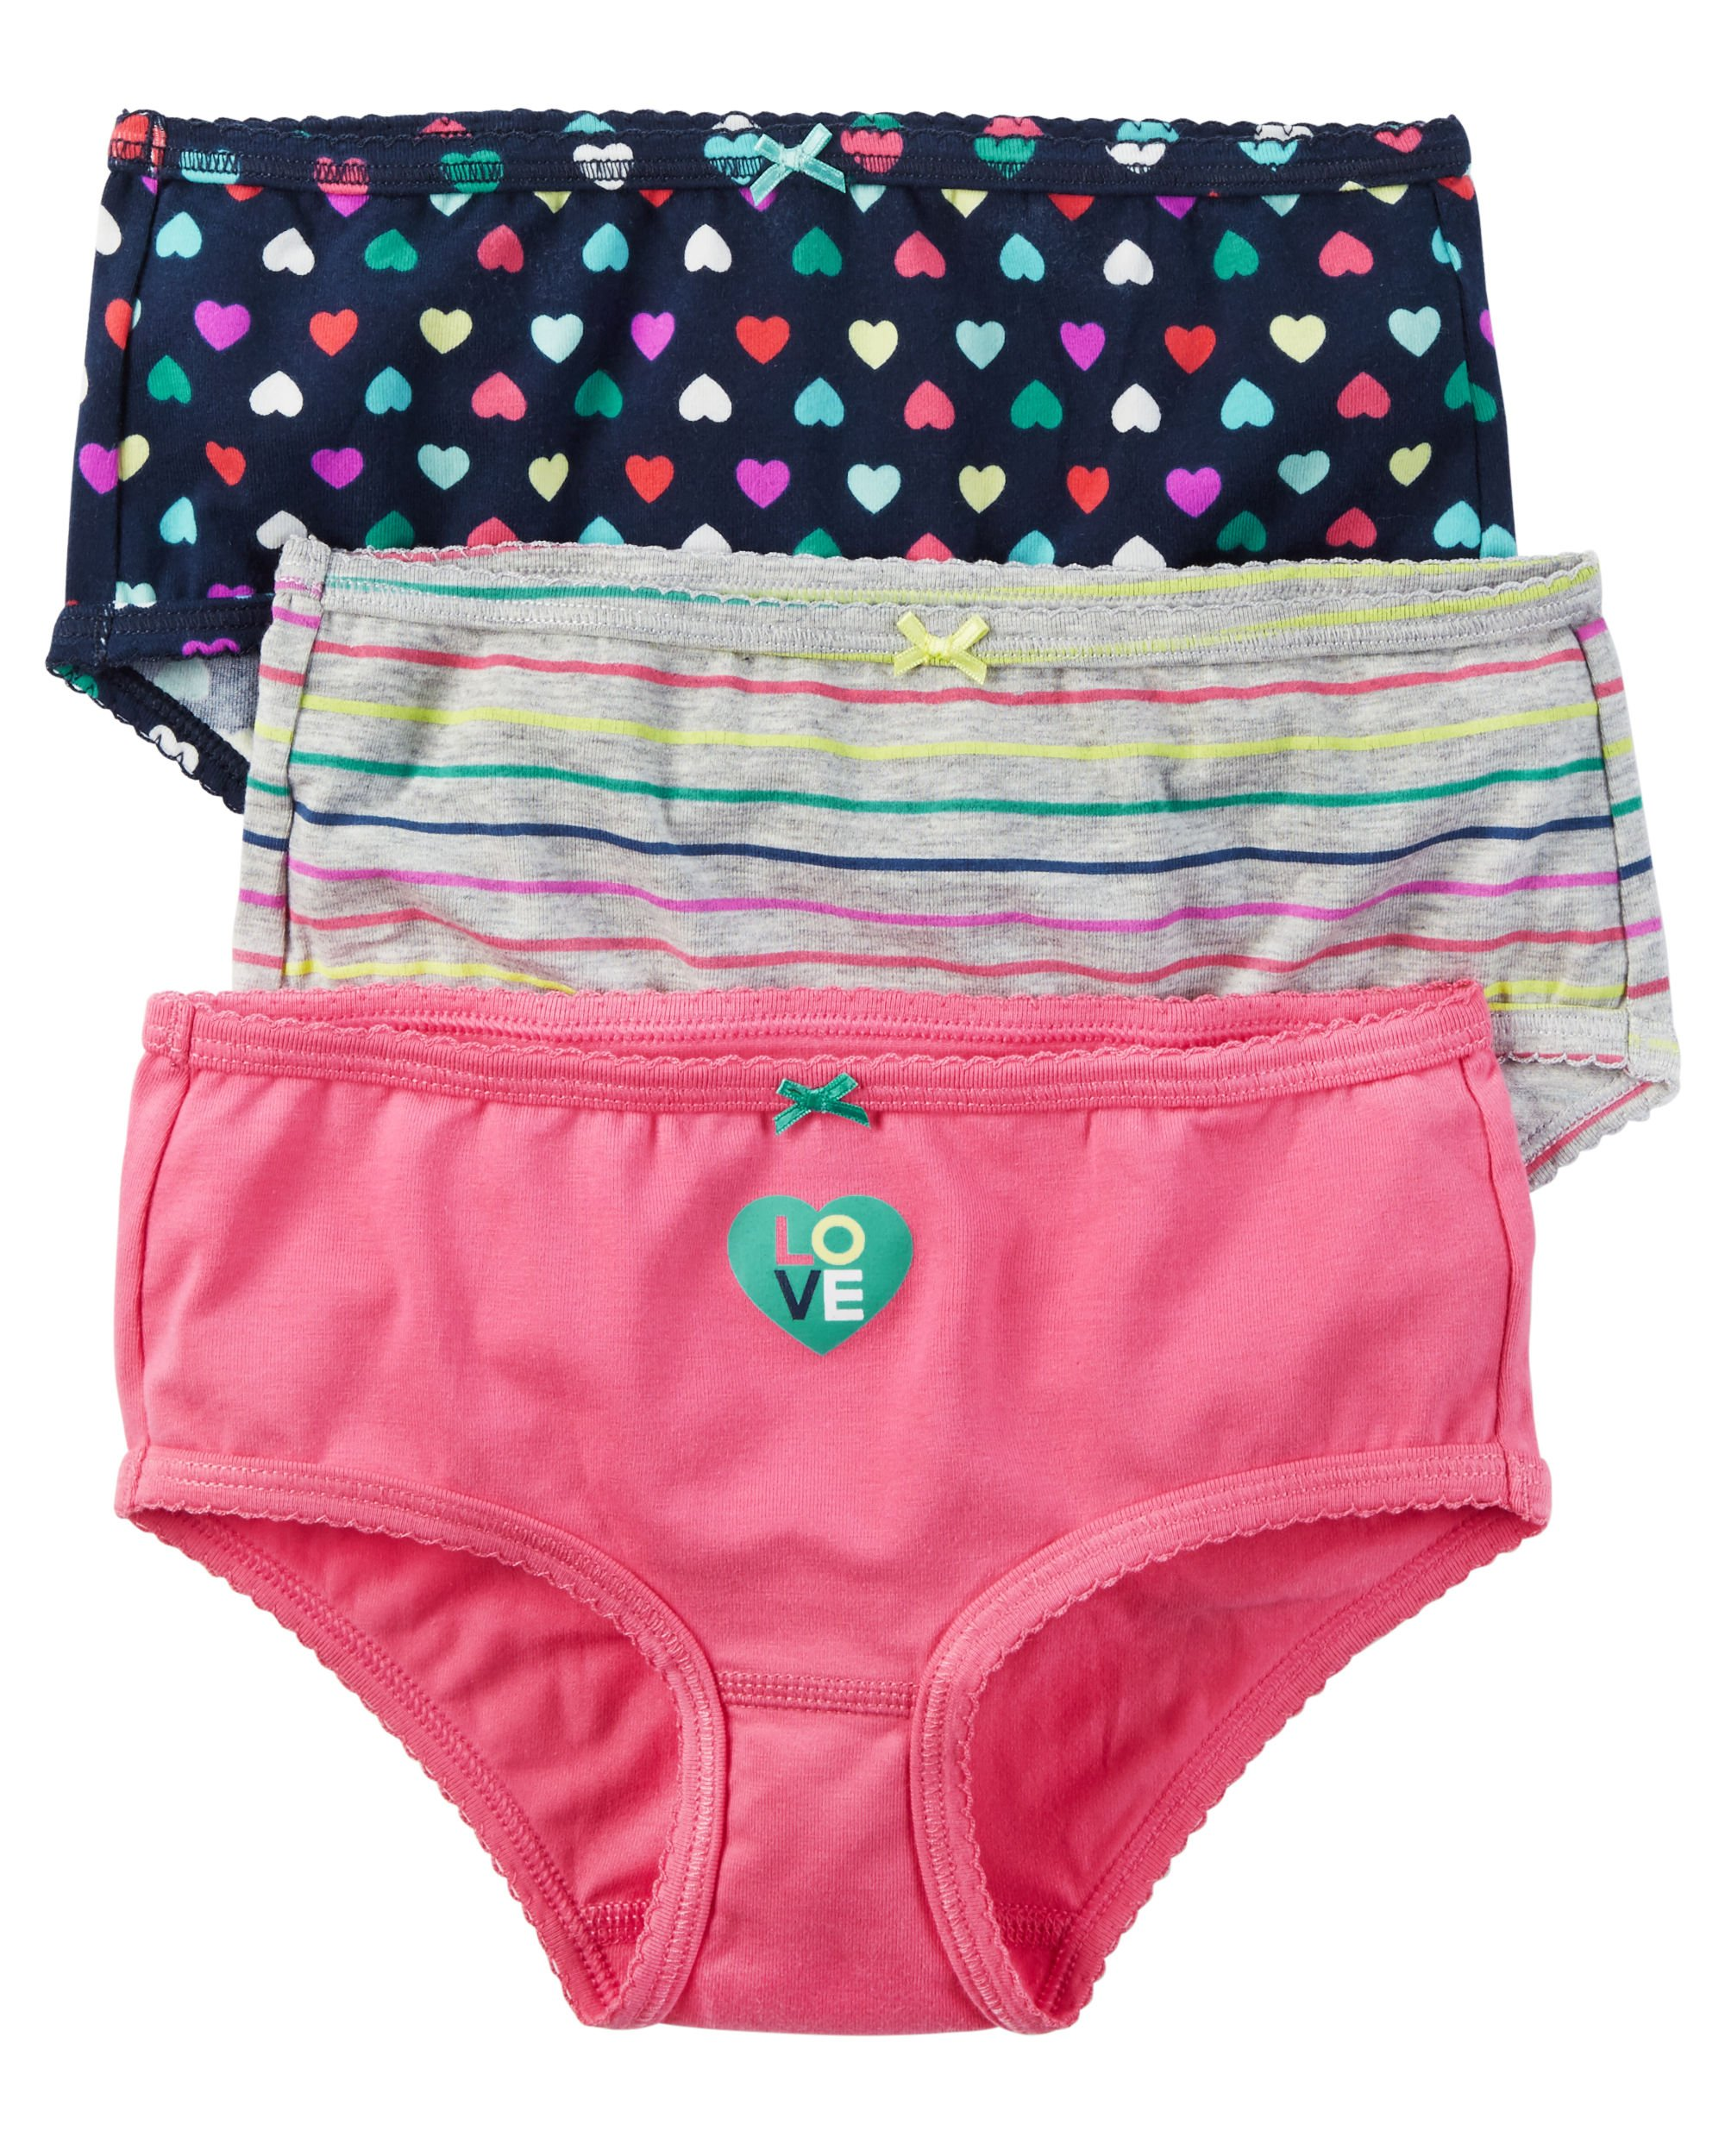 Carters Girls Toddler 3 Pack Girls Underwear (6-6x, Love and Hearts) by Carter's (Image #1)